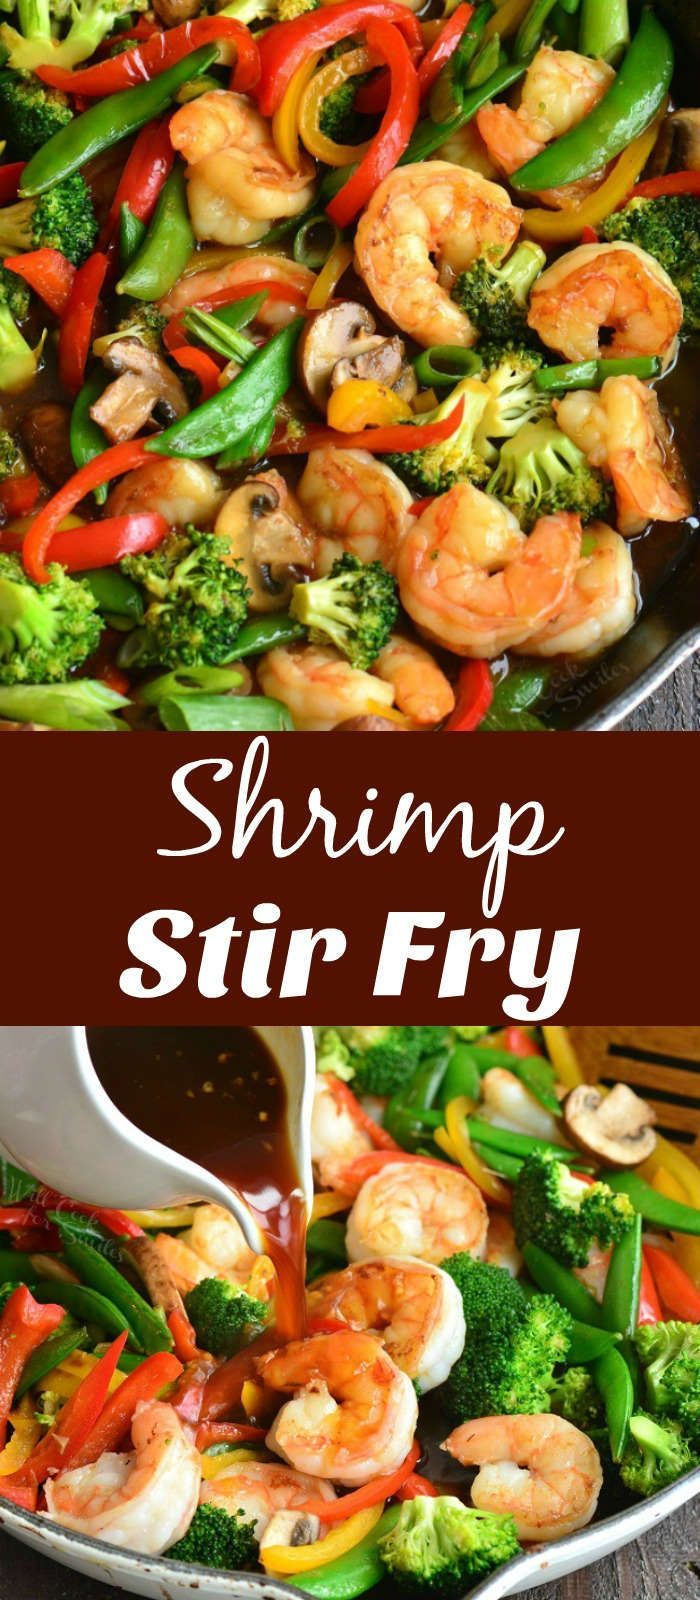 Photo of Shrimp Stir Fry